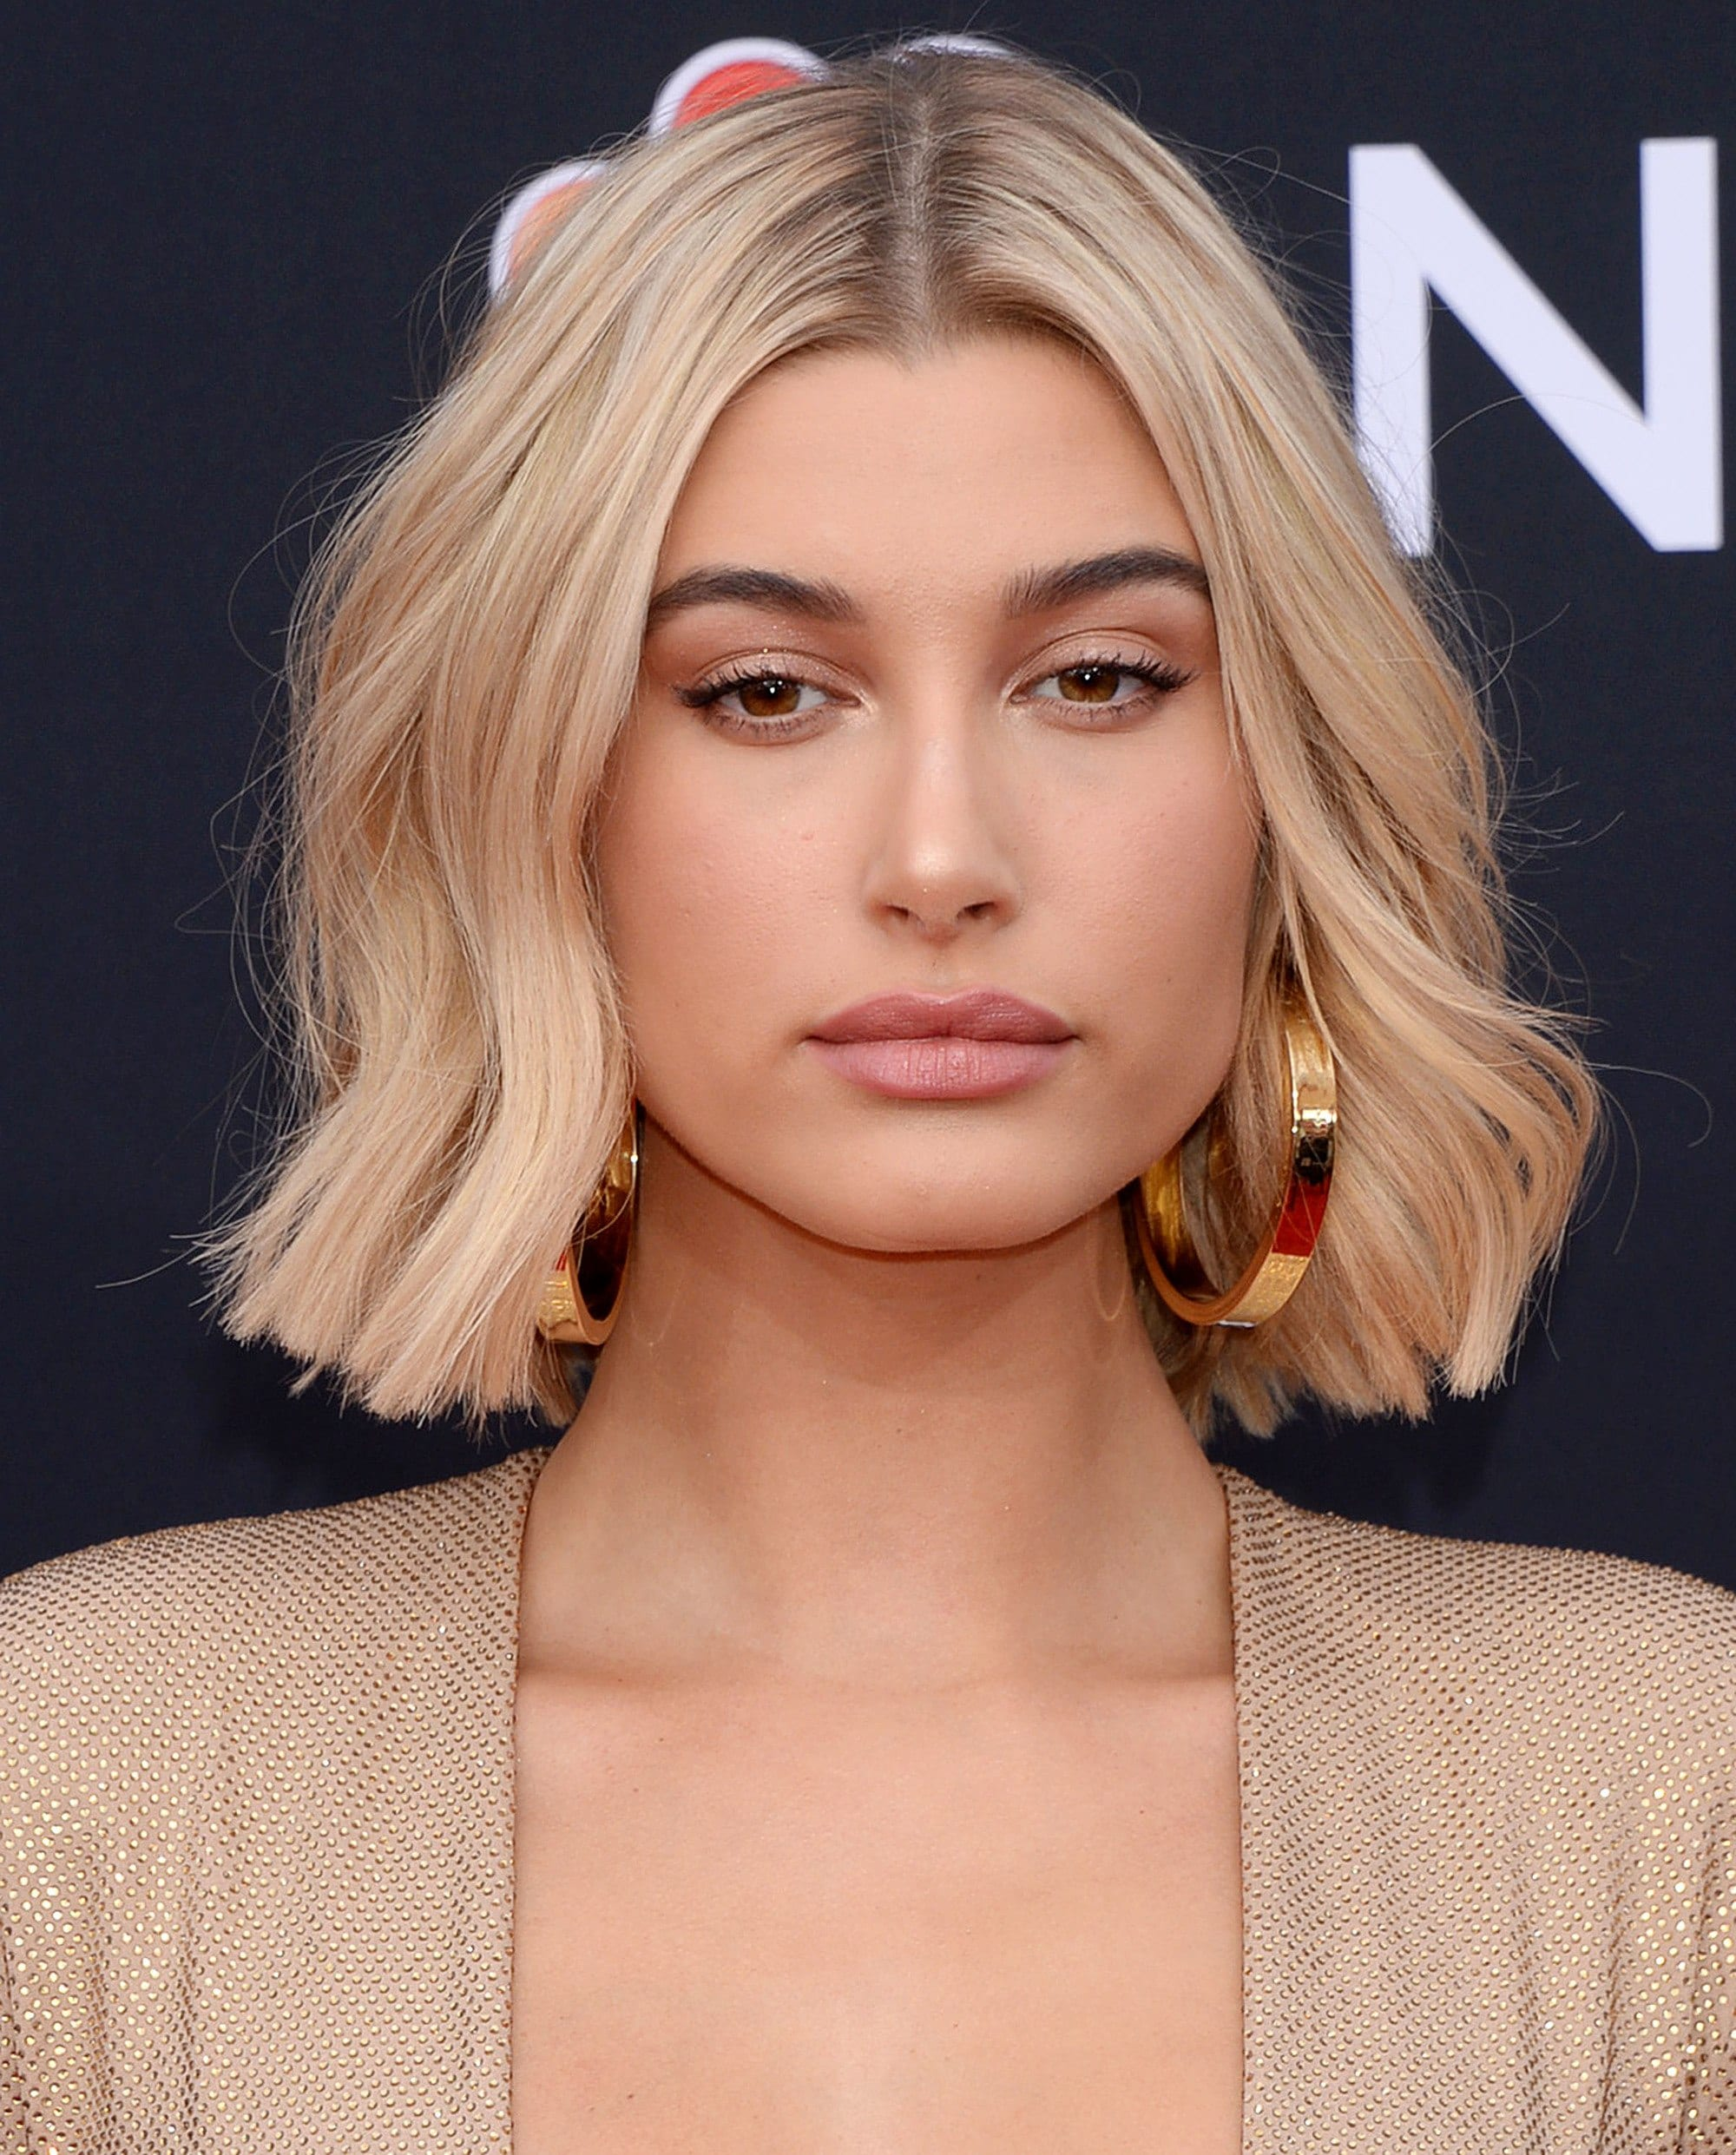 Hailey Bieber (Baldwin) with a blunt blonde wavy bob